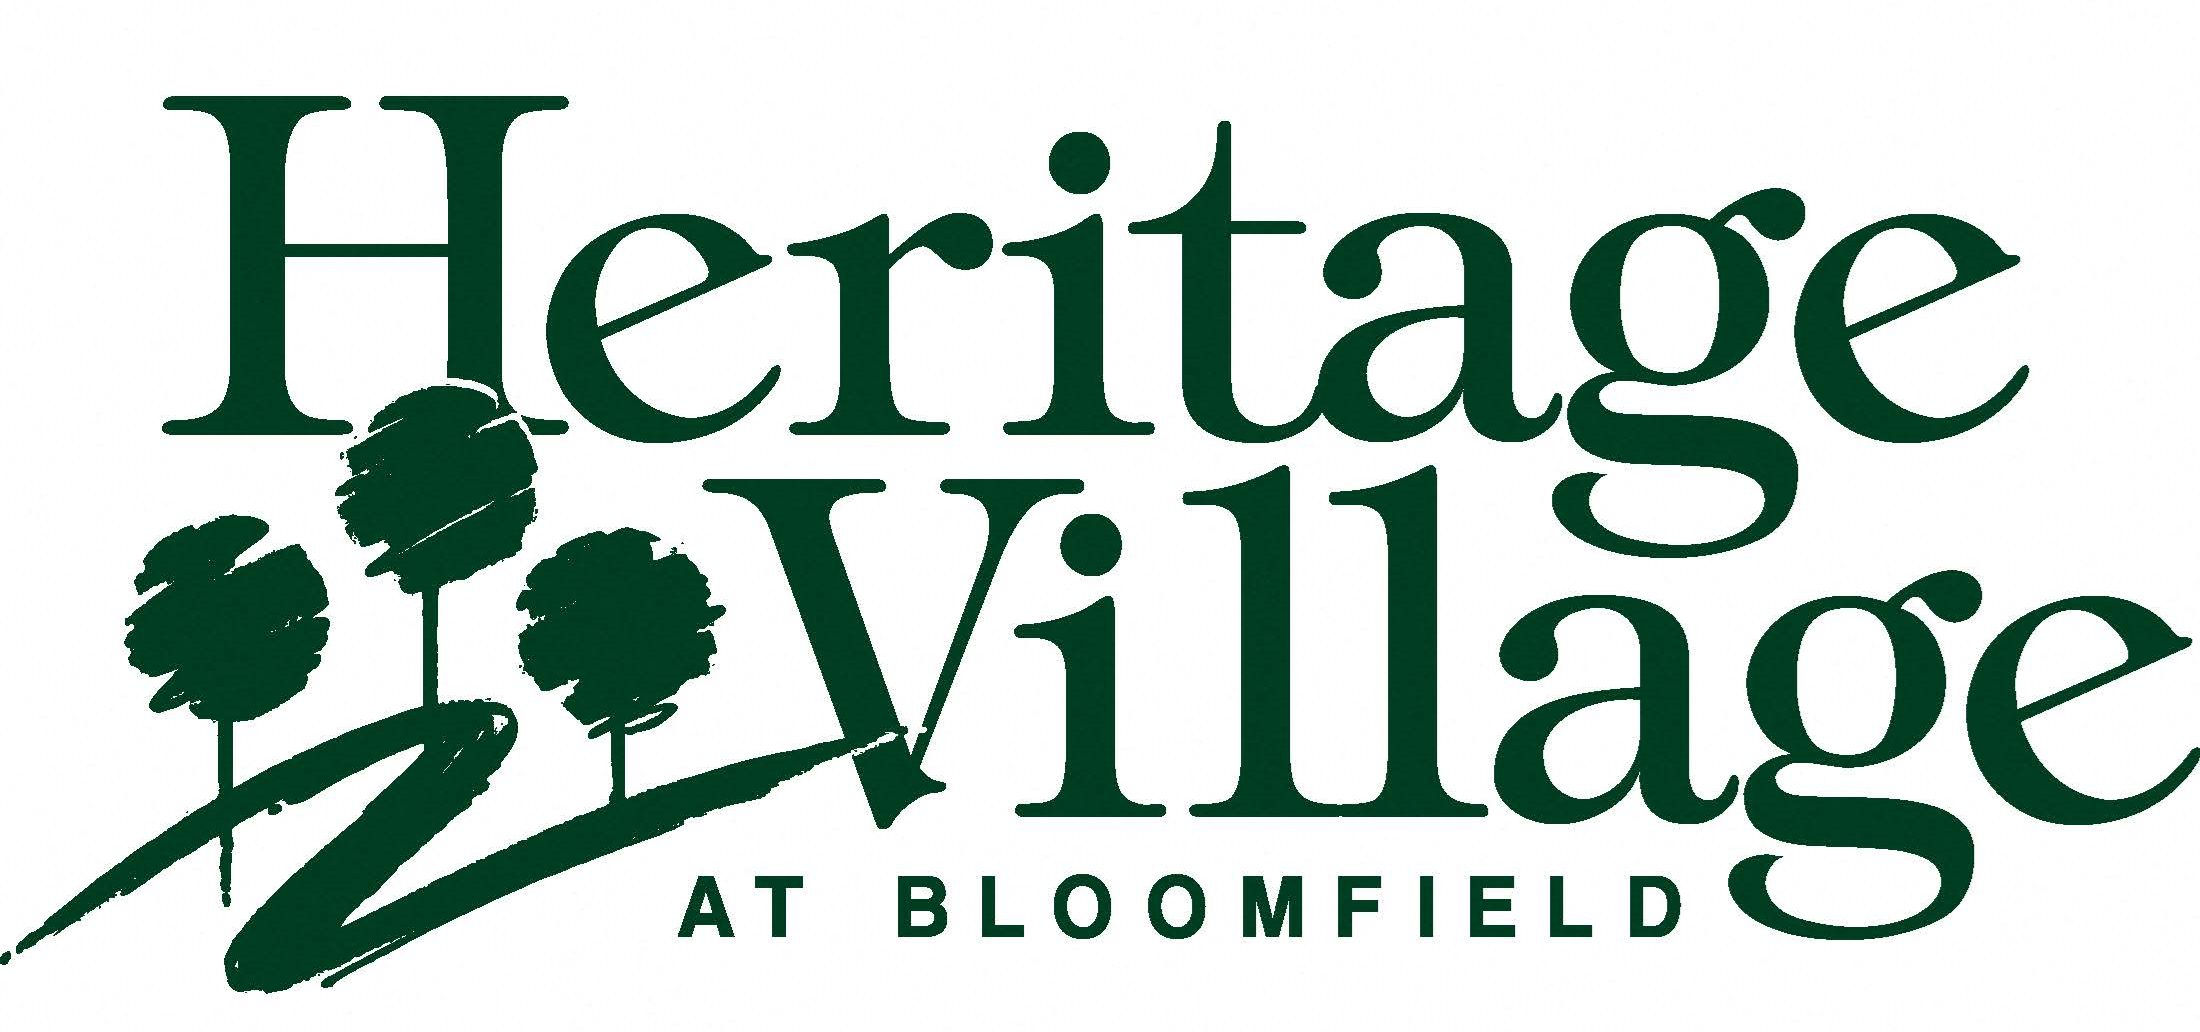 Heritage Village at Bloomfield Property Logo 1